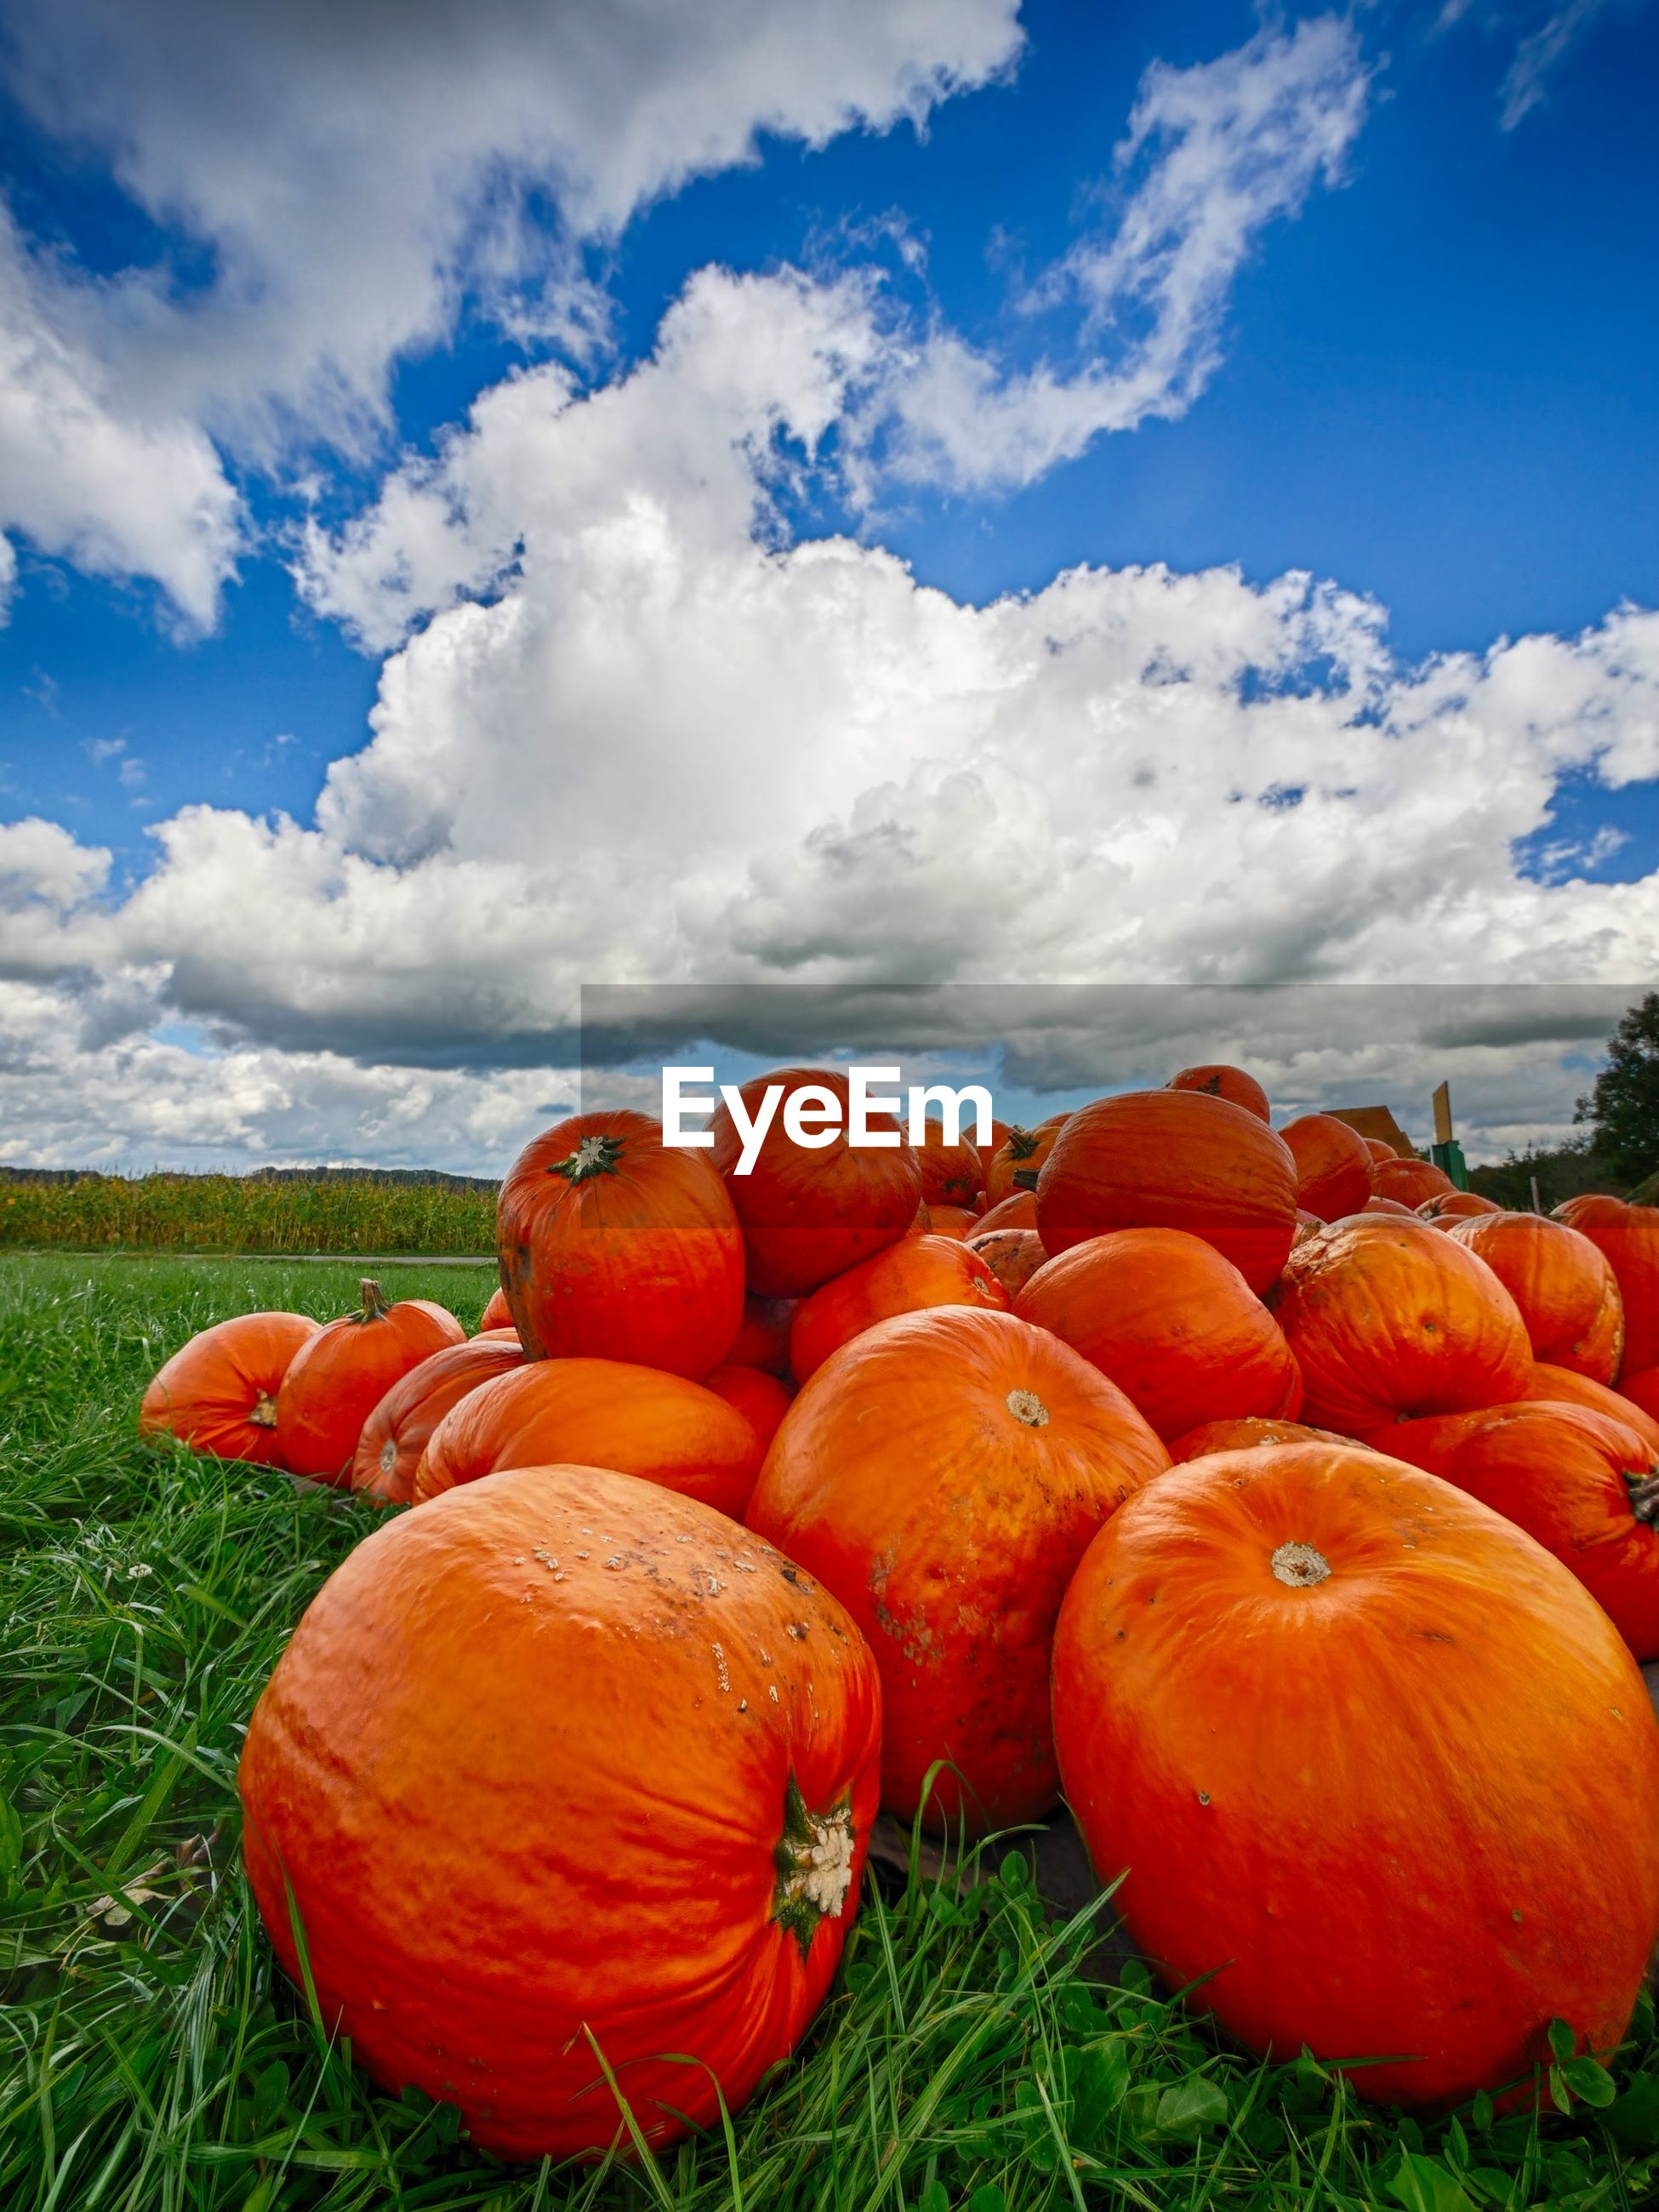 Close-up of orange pumpkins on grassy field against cloudy sky